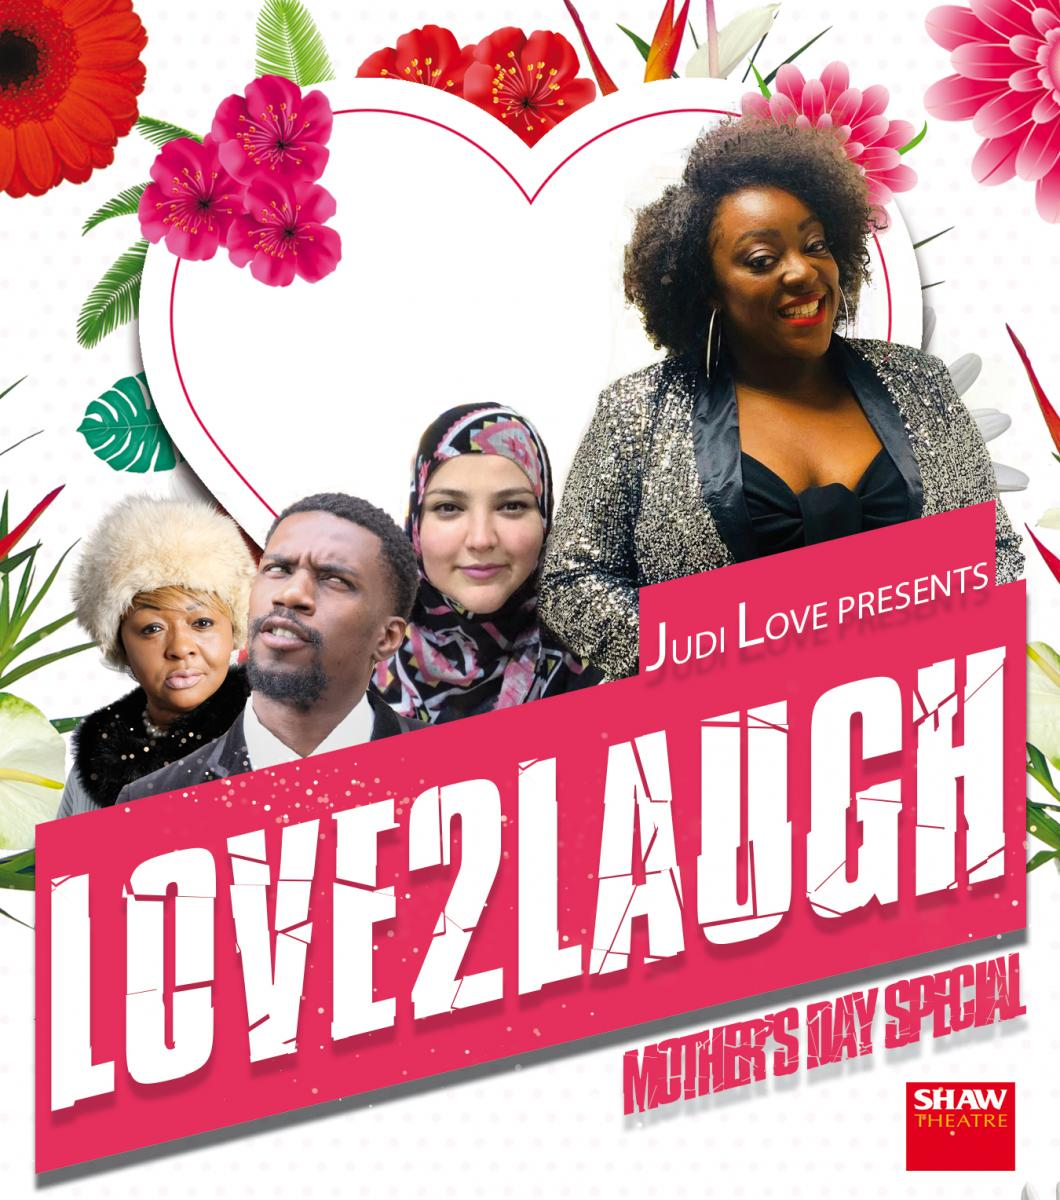 Judi Love presents Love2Laugh Mother's Day Special